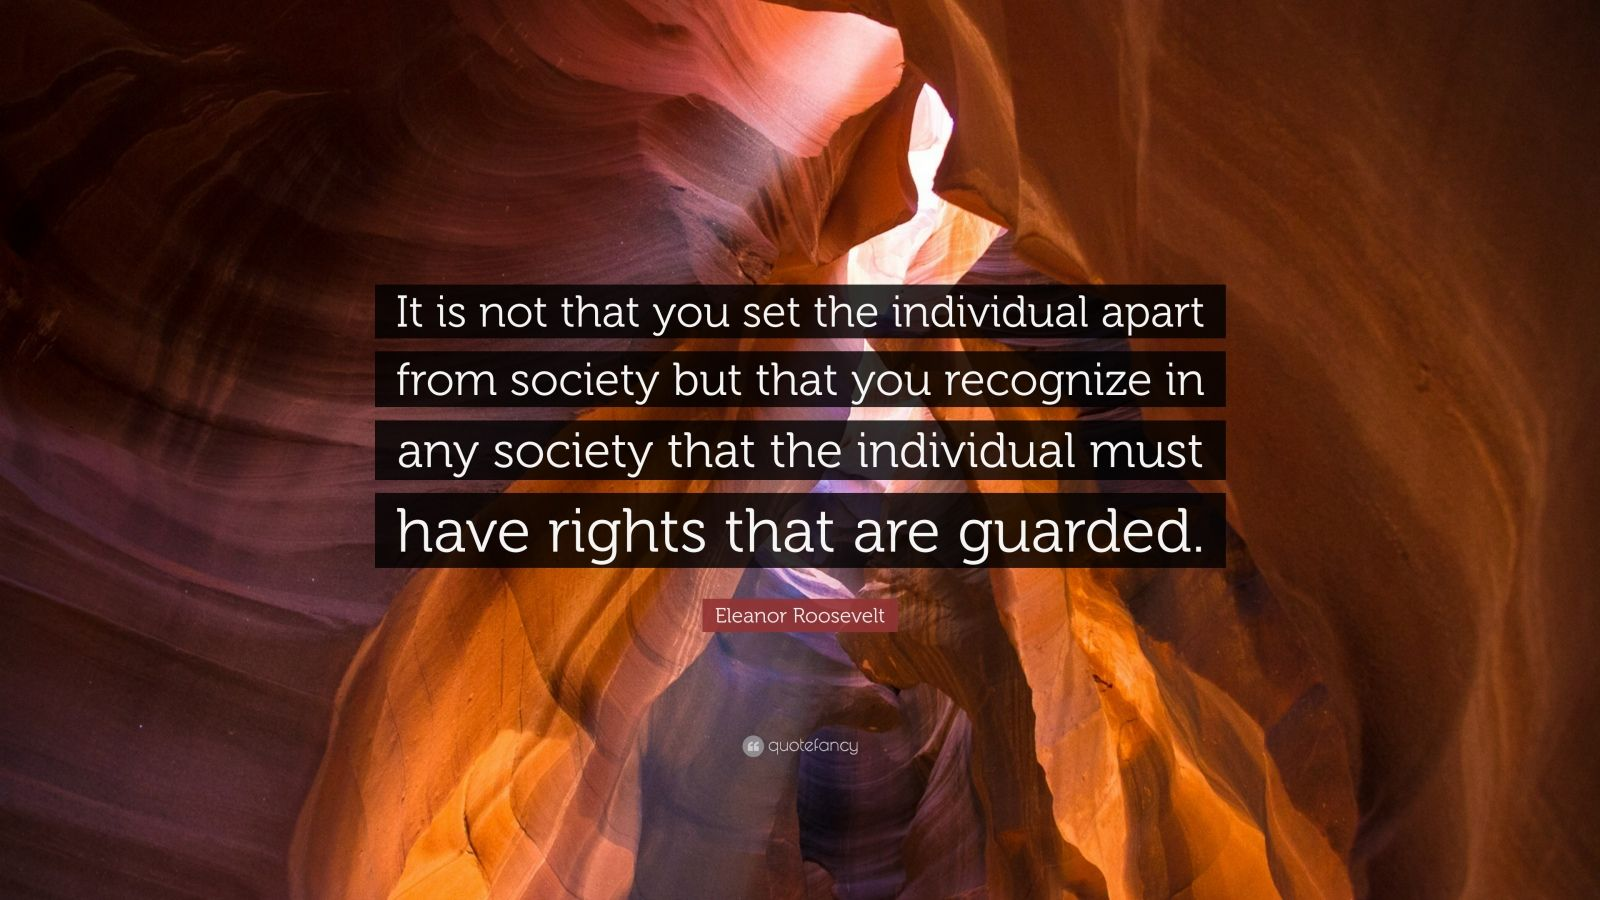 """Eleanor Roosevelt Quote: """"It is not that you set the individual apart from society but that you recognize in any society that the individual must have rights that are guarded."""""""